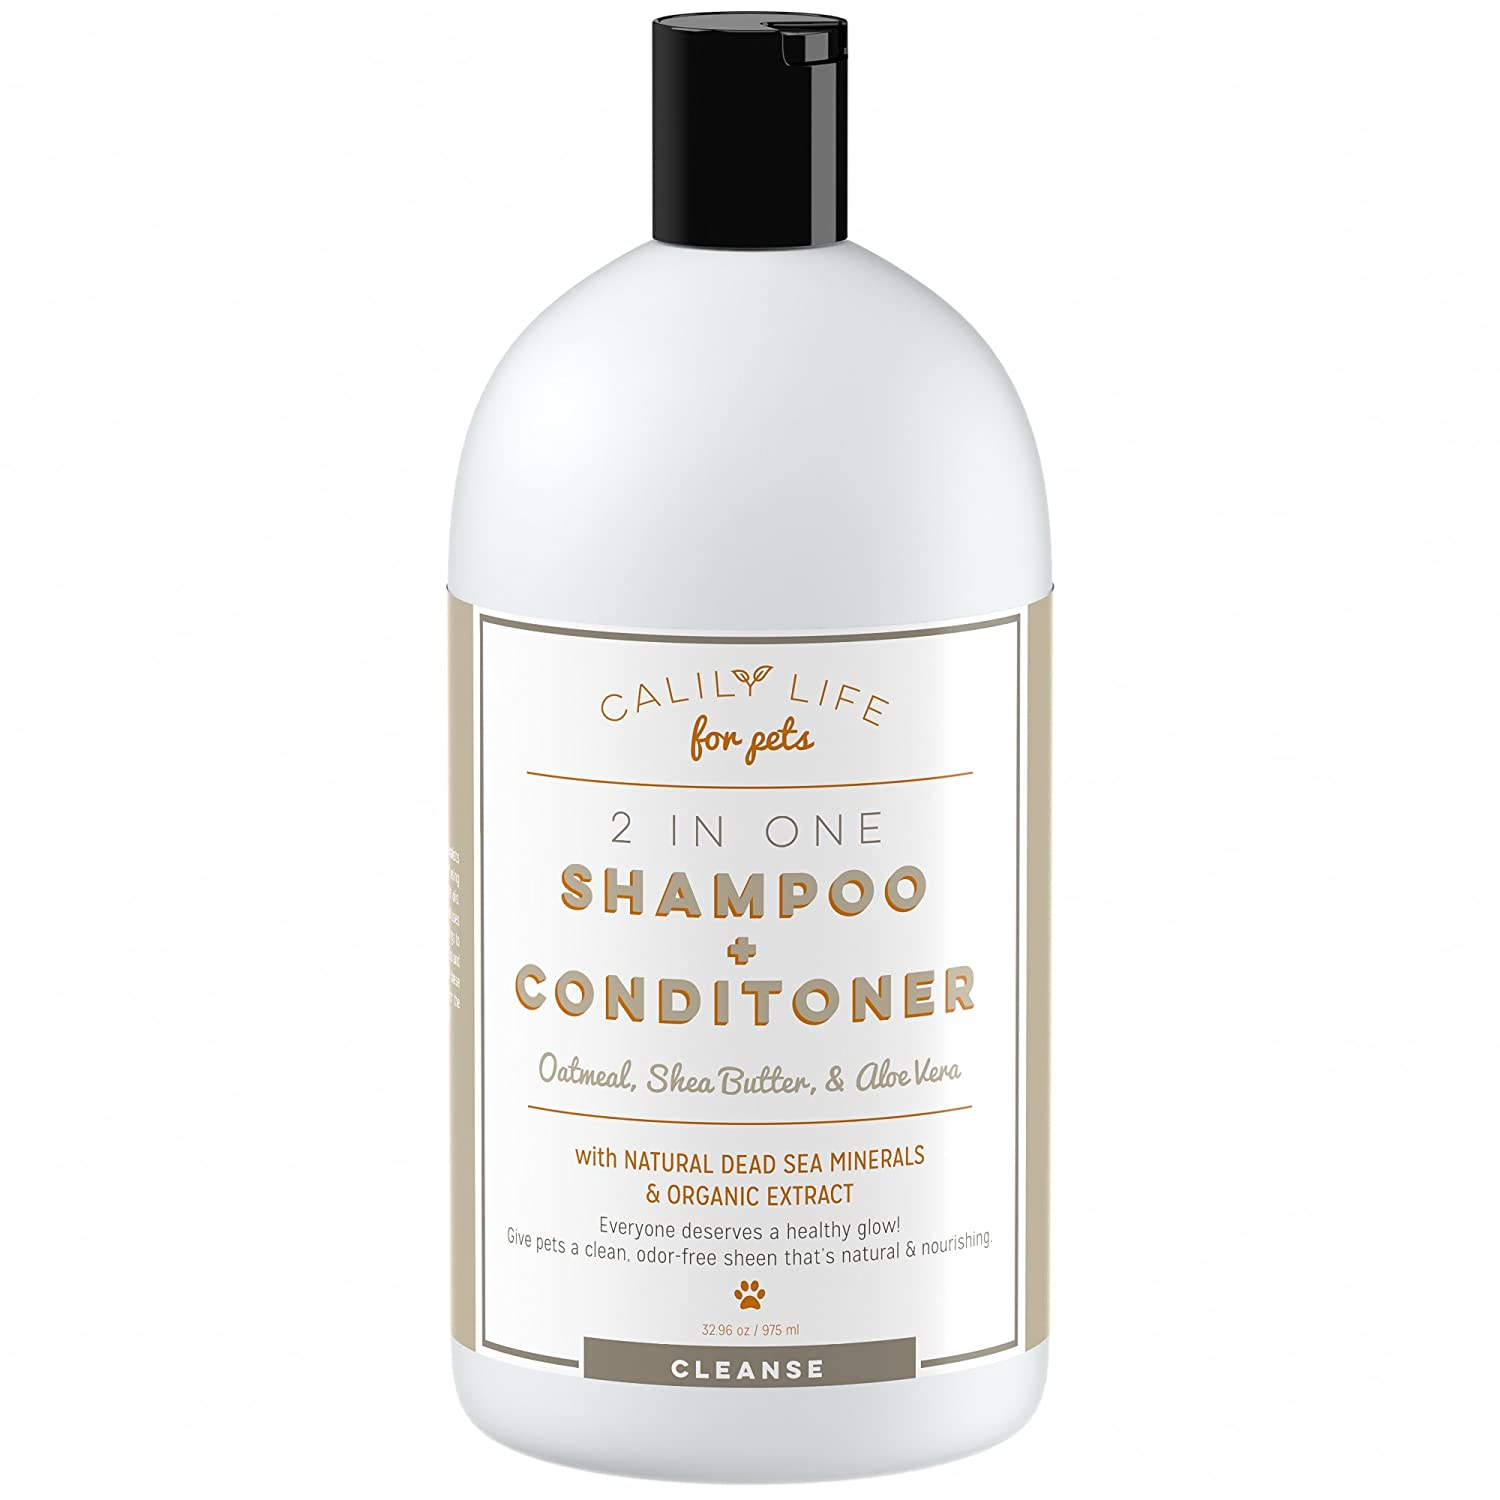 Calily Life Organic Dog and Cat Shampoo + Conditioner, 32.96 Oz ( Enriched with Oatmeal,Shea Butter and Aloe Vera)